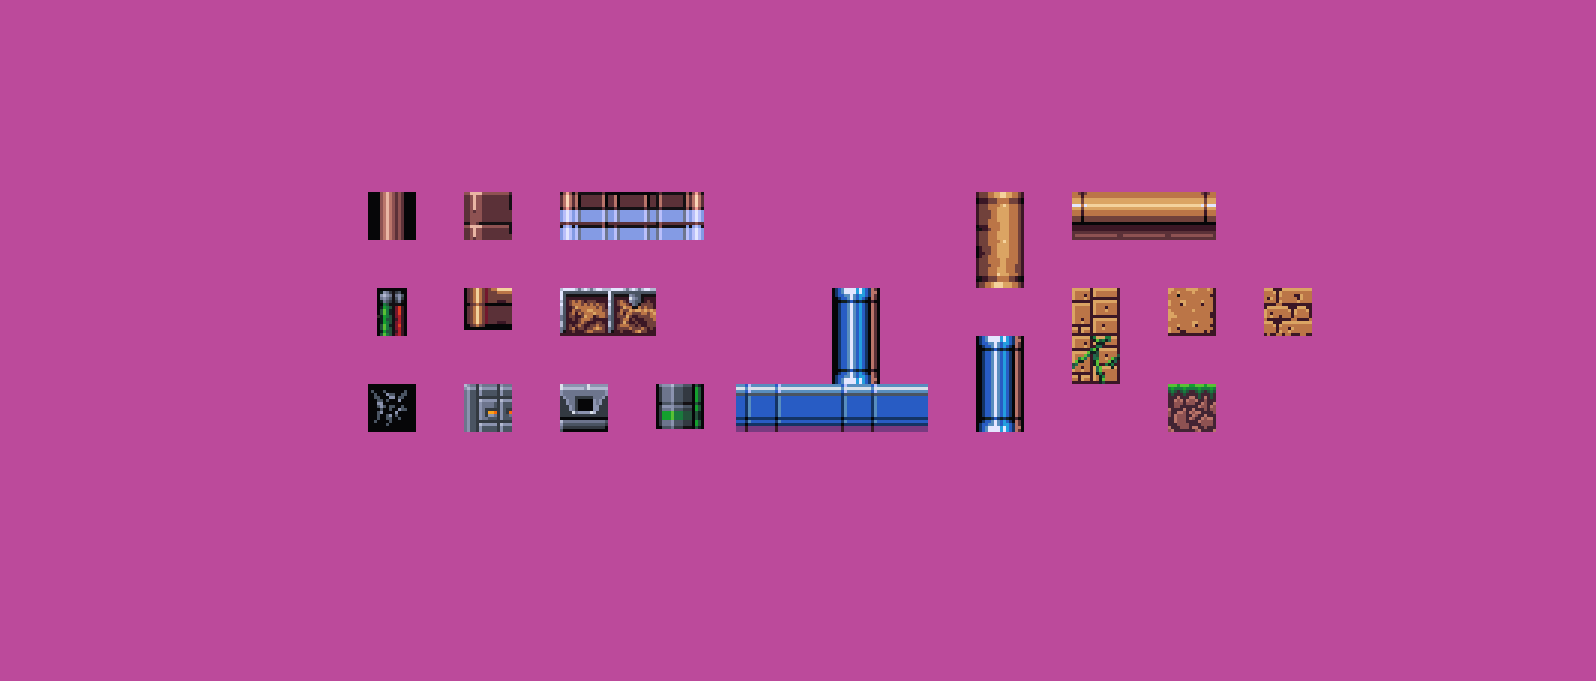 Pixelart Tiles referenced from Xenon 2 and Wolfchild